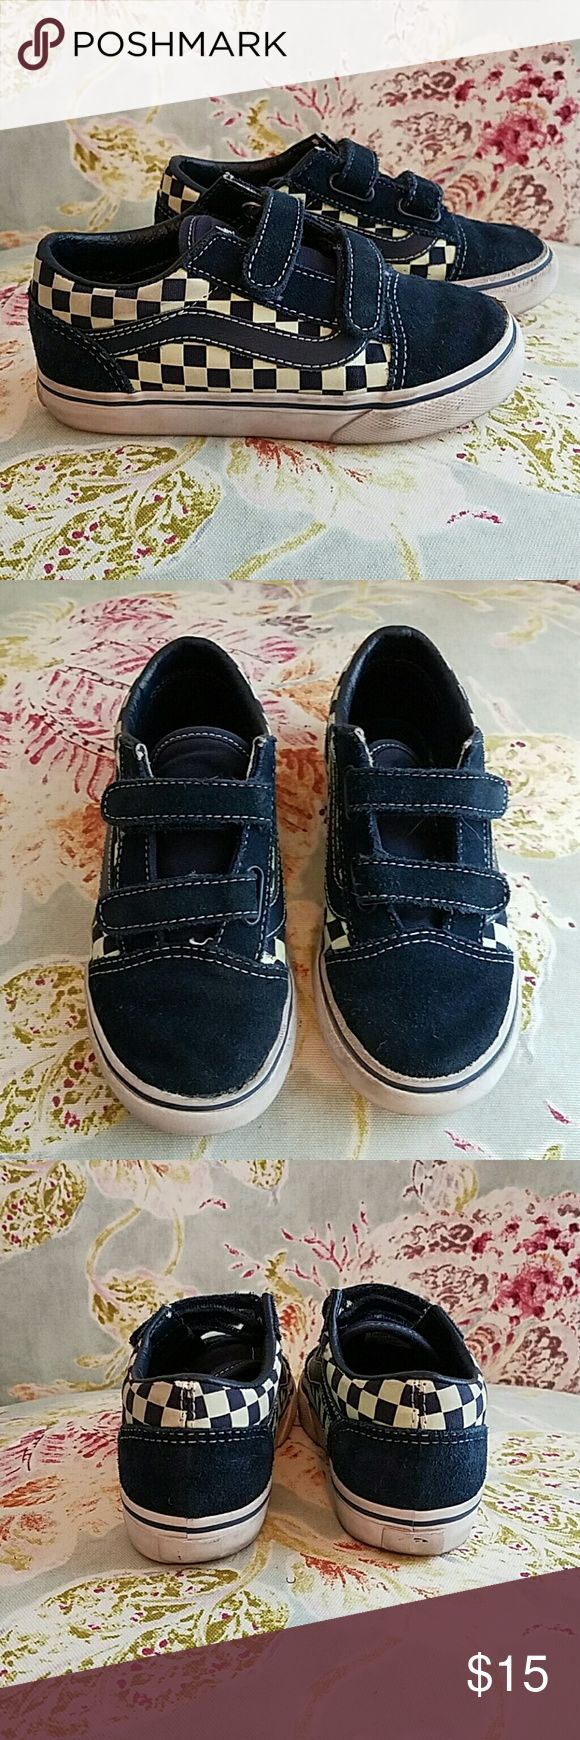 VANS FOR KIDS/TODDLERS These are sure to be a favorite with your little one! Cool, glow in the dark vans. Cool suede like upper material. Checkers on the side. Velcro for easy on and off. Vans Shoes Sneakers